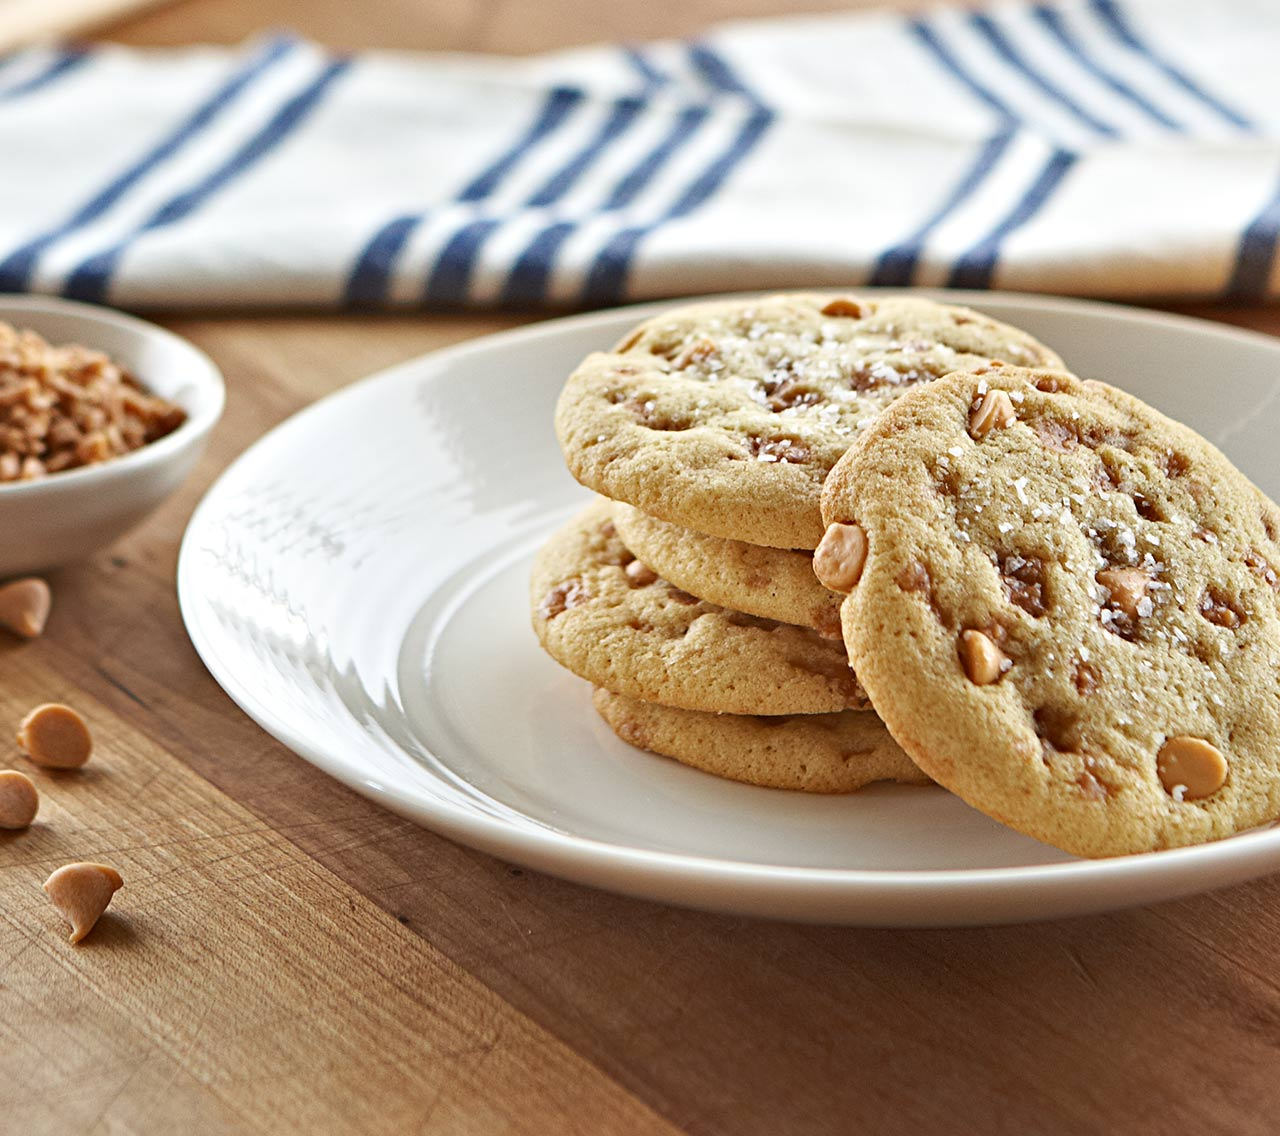 Salted Caramel Cookies-Becel Anything Goes Cookie Dough